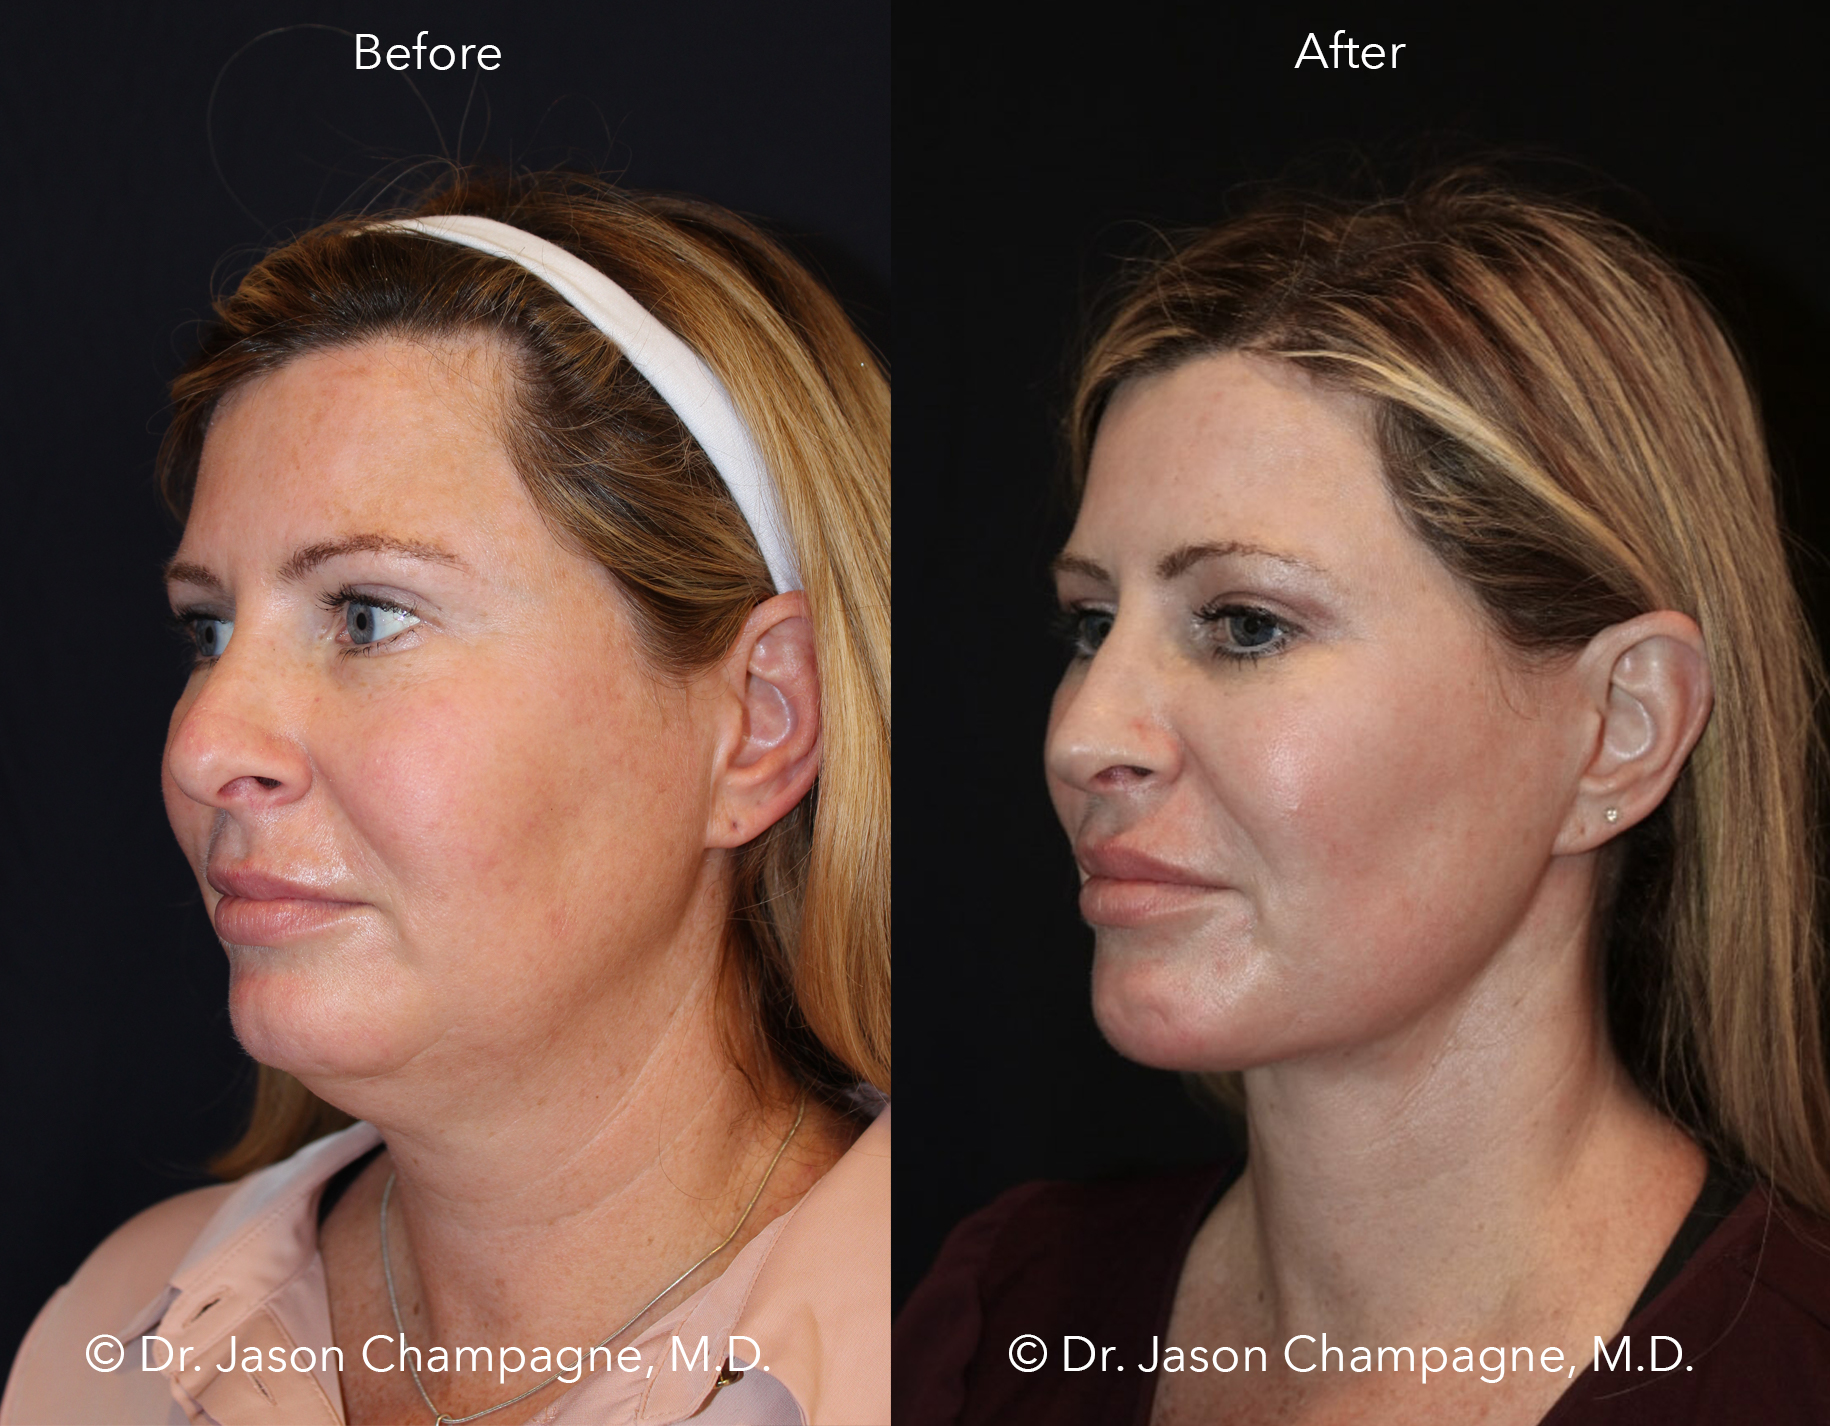 Dr-Jason-Champagne-Neck-Liposuction-Chin-Implant-Neck-Lift-Face-Lift-Rhinoplasty-Advanced-Radio-Frequency-Skin-Tightening-CO2-Laser-Skin-Resurfacing-Buccal-Fat-Excision-Before-and-After-3/4